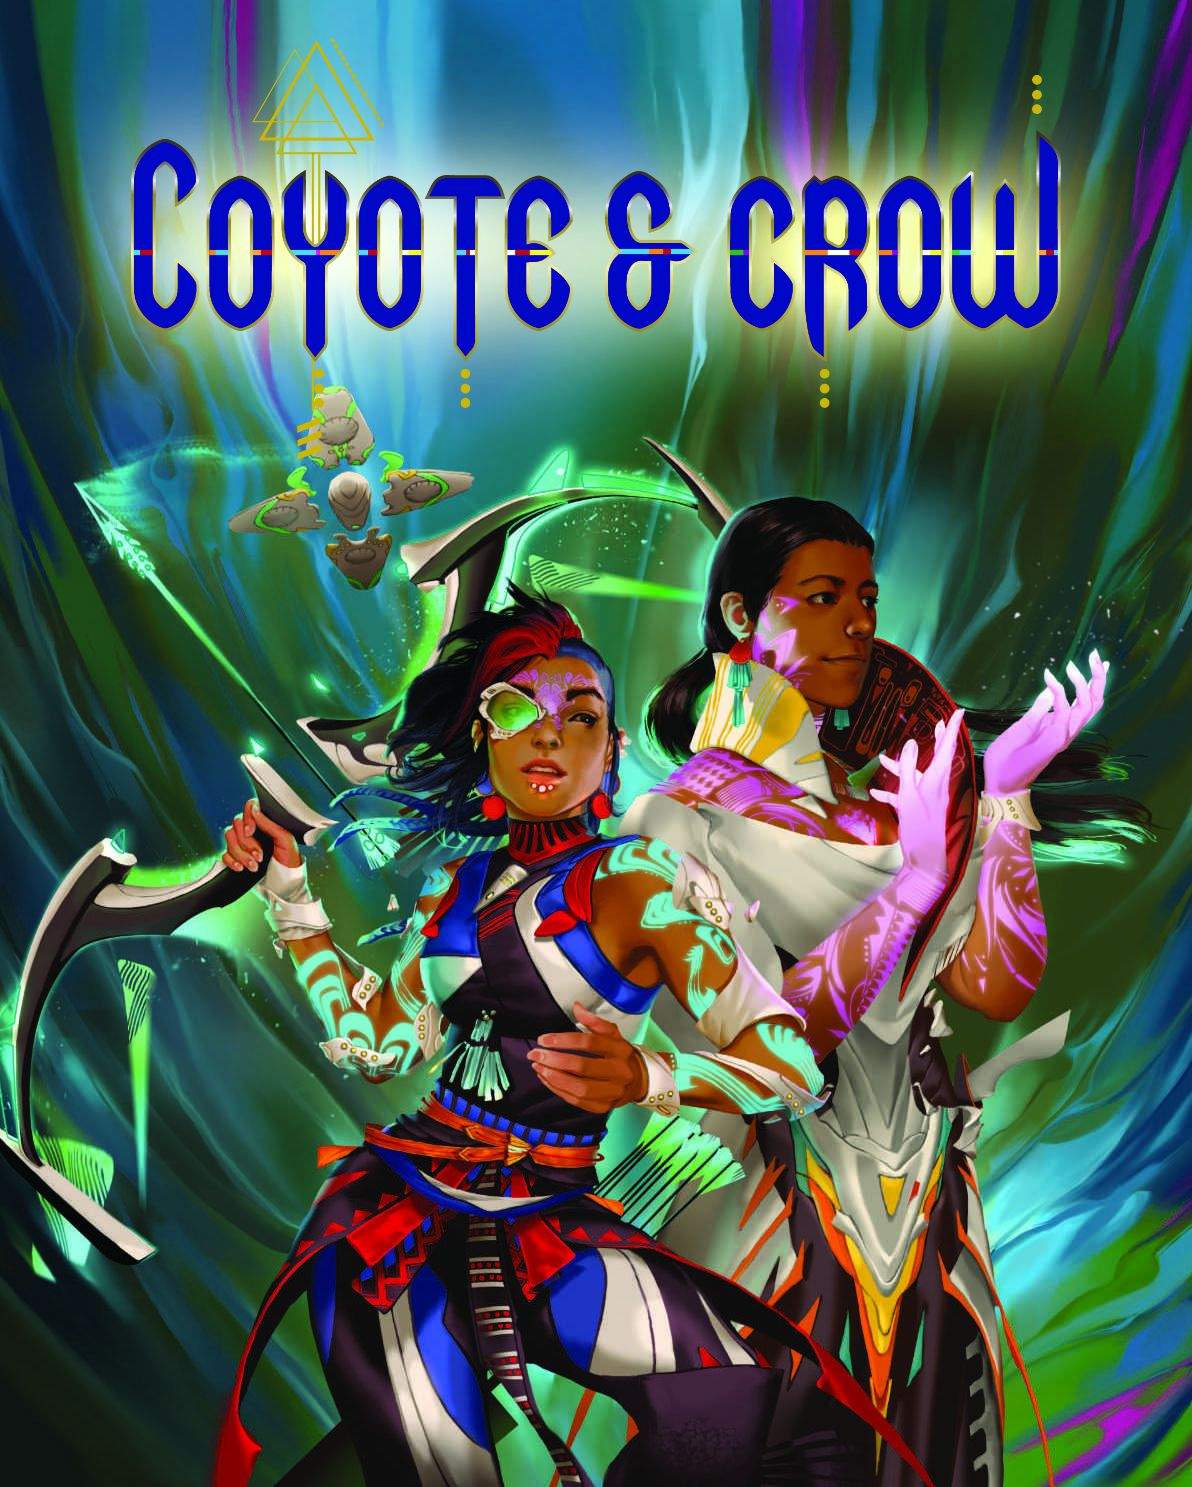 Cover art for Coyote & Crow showing descendents of pre-Columbian Native Americans dressed in colorful armor.